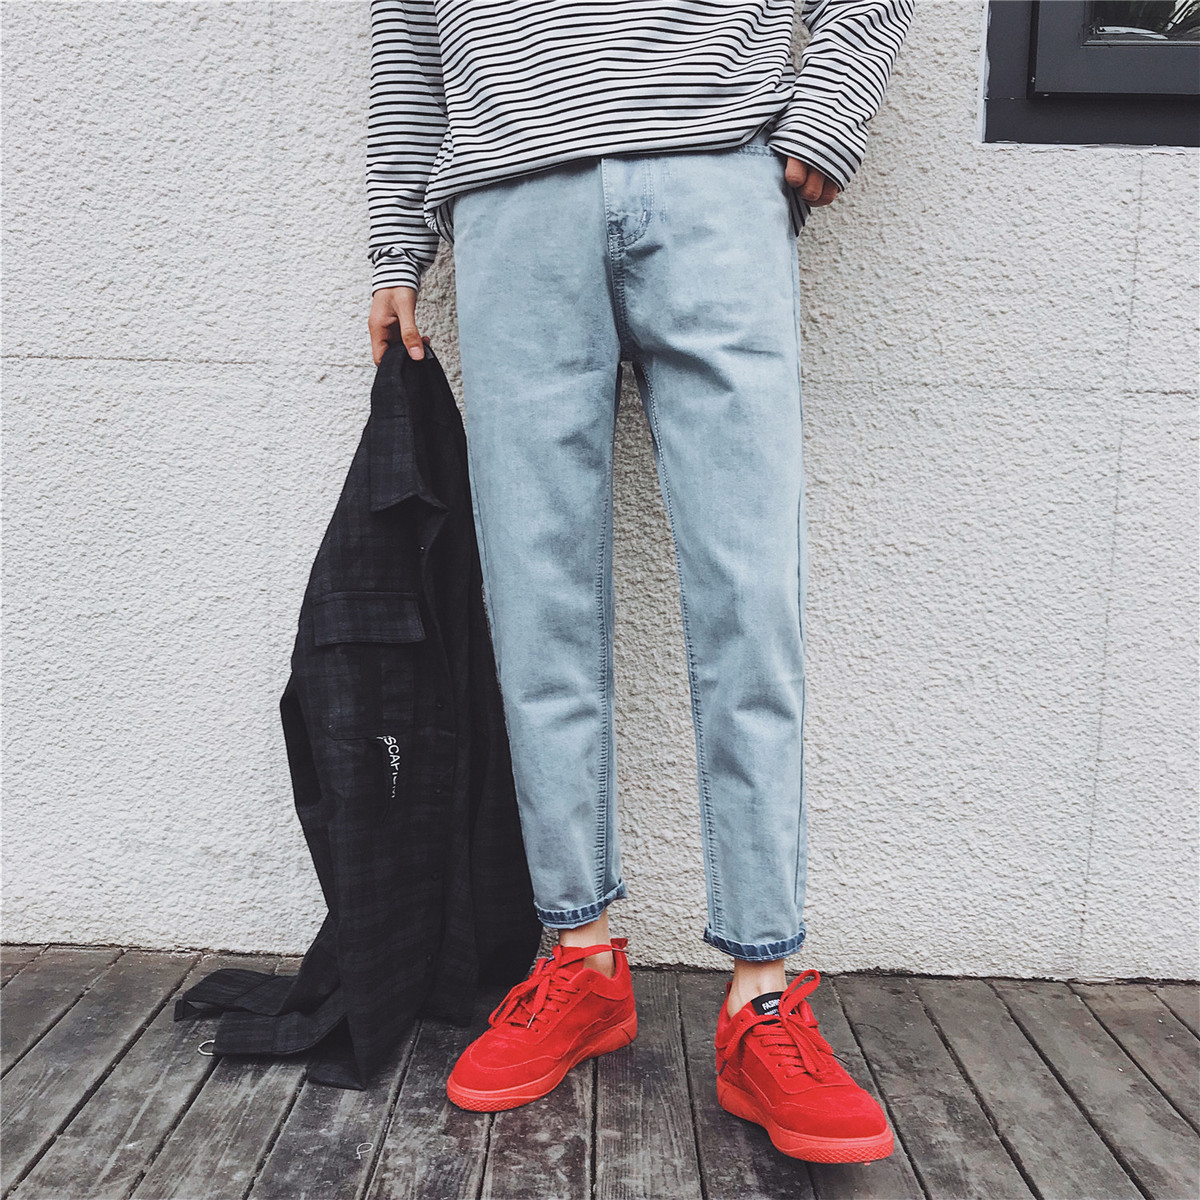 2018 New Classic Mens Fashion Trend Casual Blue Slim Fit Cowboy Pants Youth Stretch Homme Jeans Denim Trousers Size 28-34